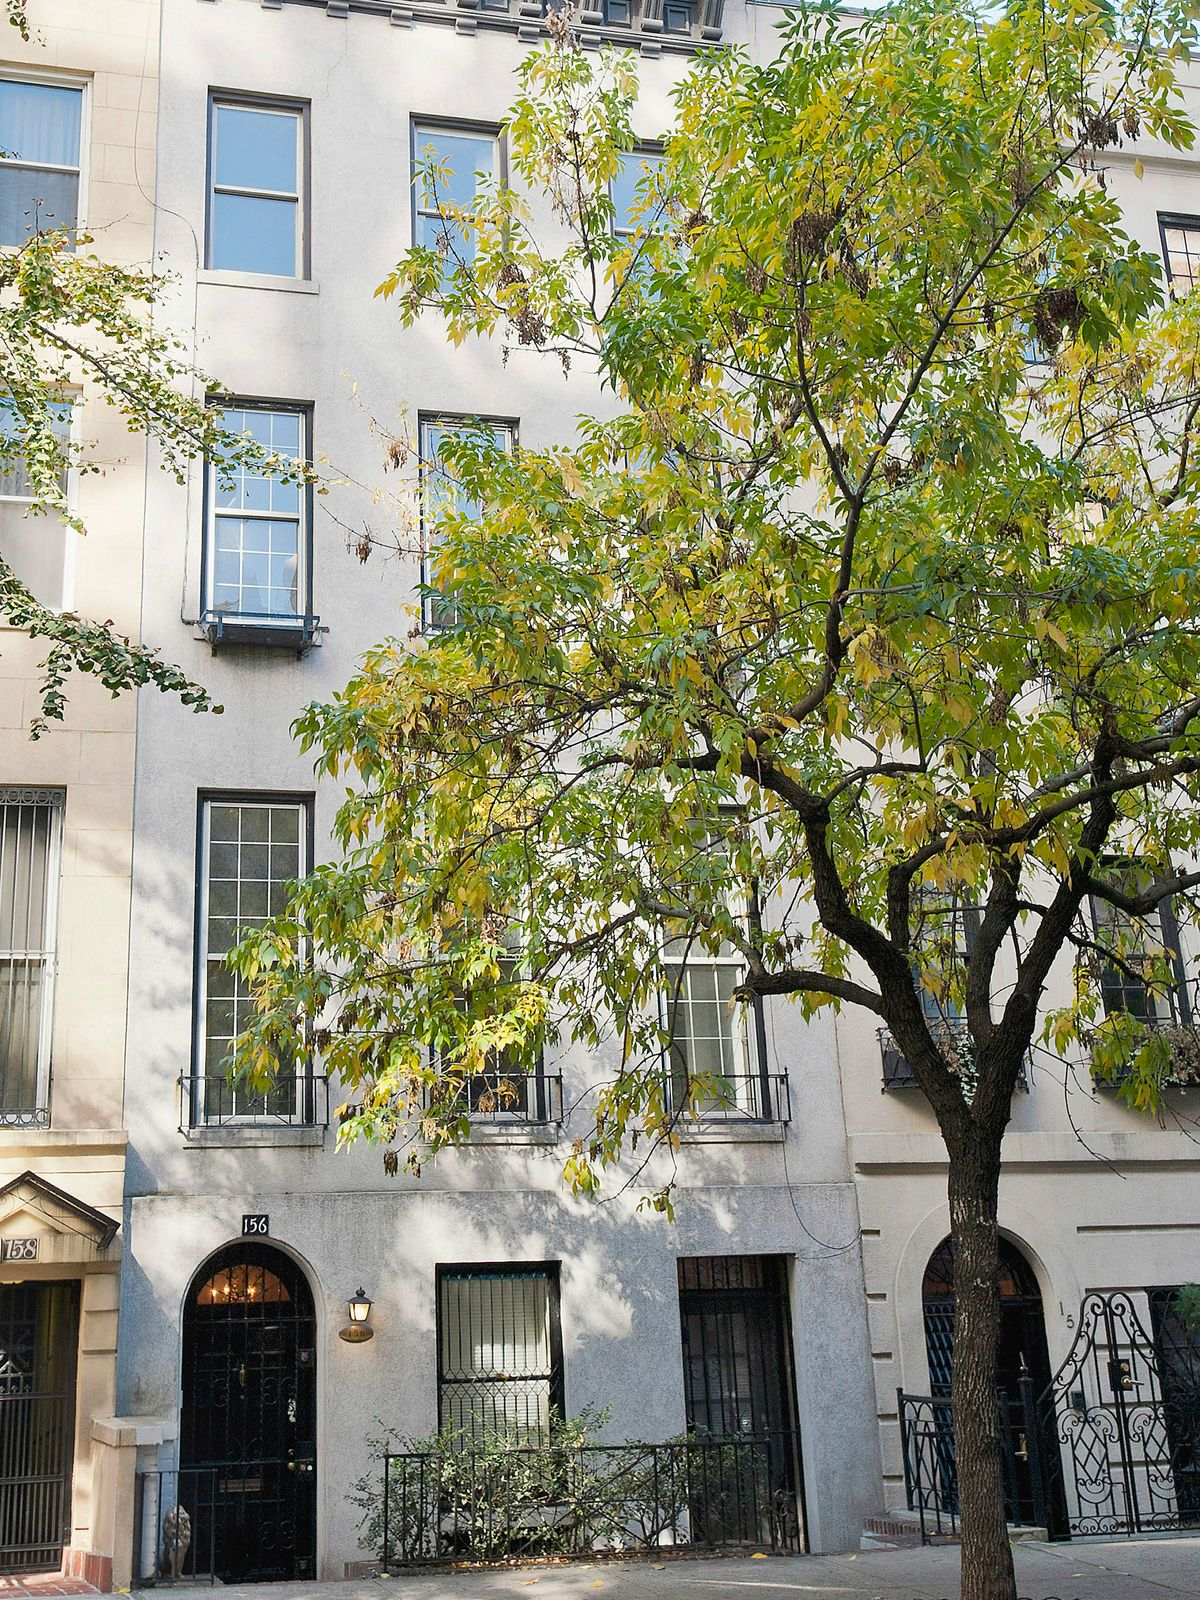 156 East 62nd Street, New York NY Townhouse - New York City Real Estate